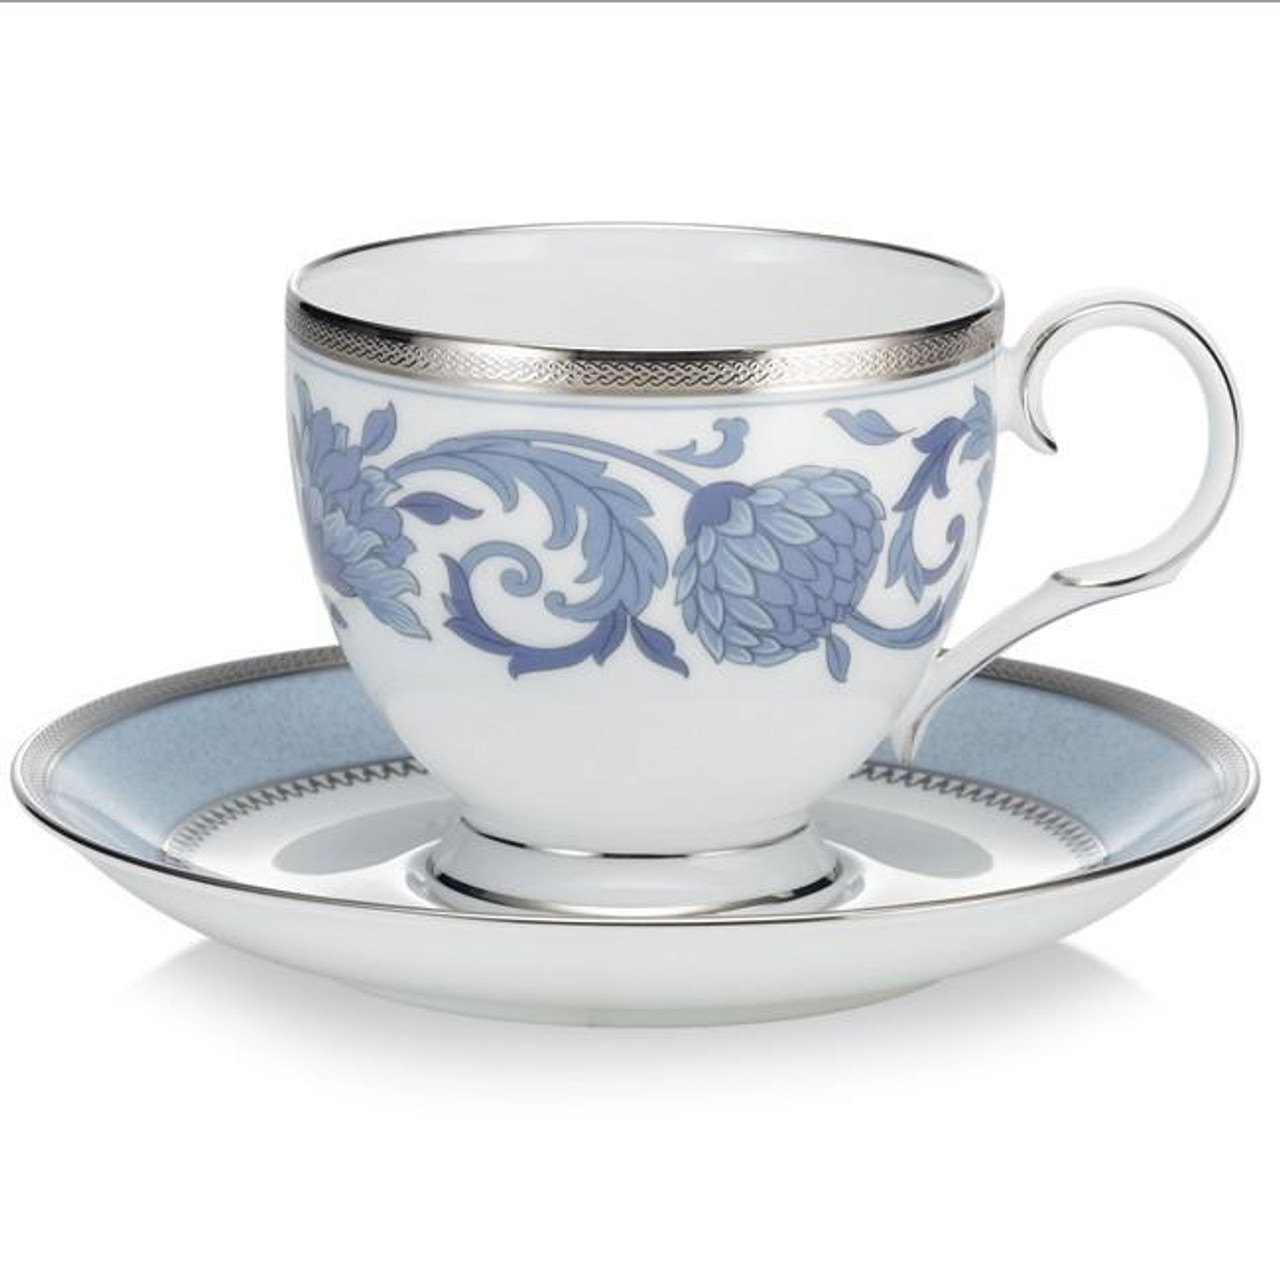 4893 P50788 In Gift Box Cup Saucer Pair By Noritake